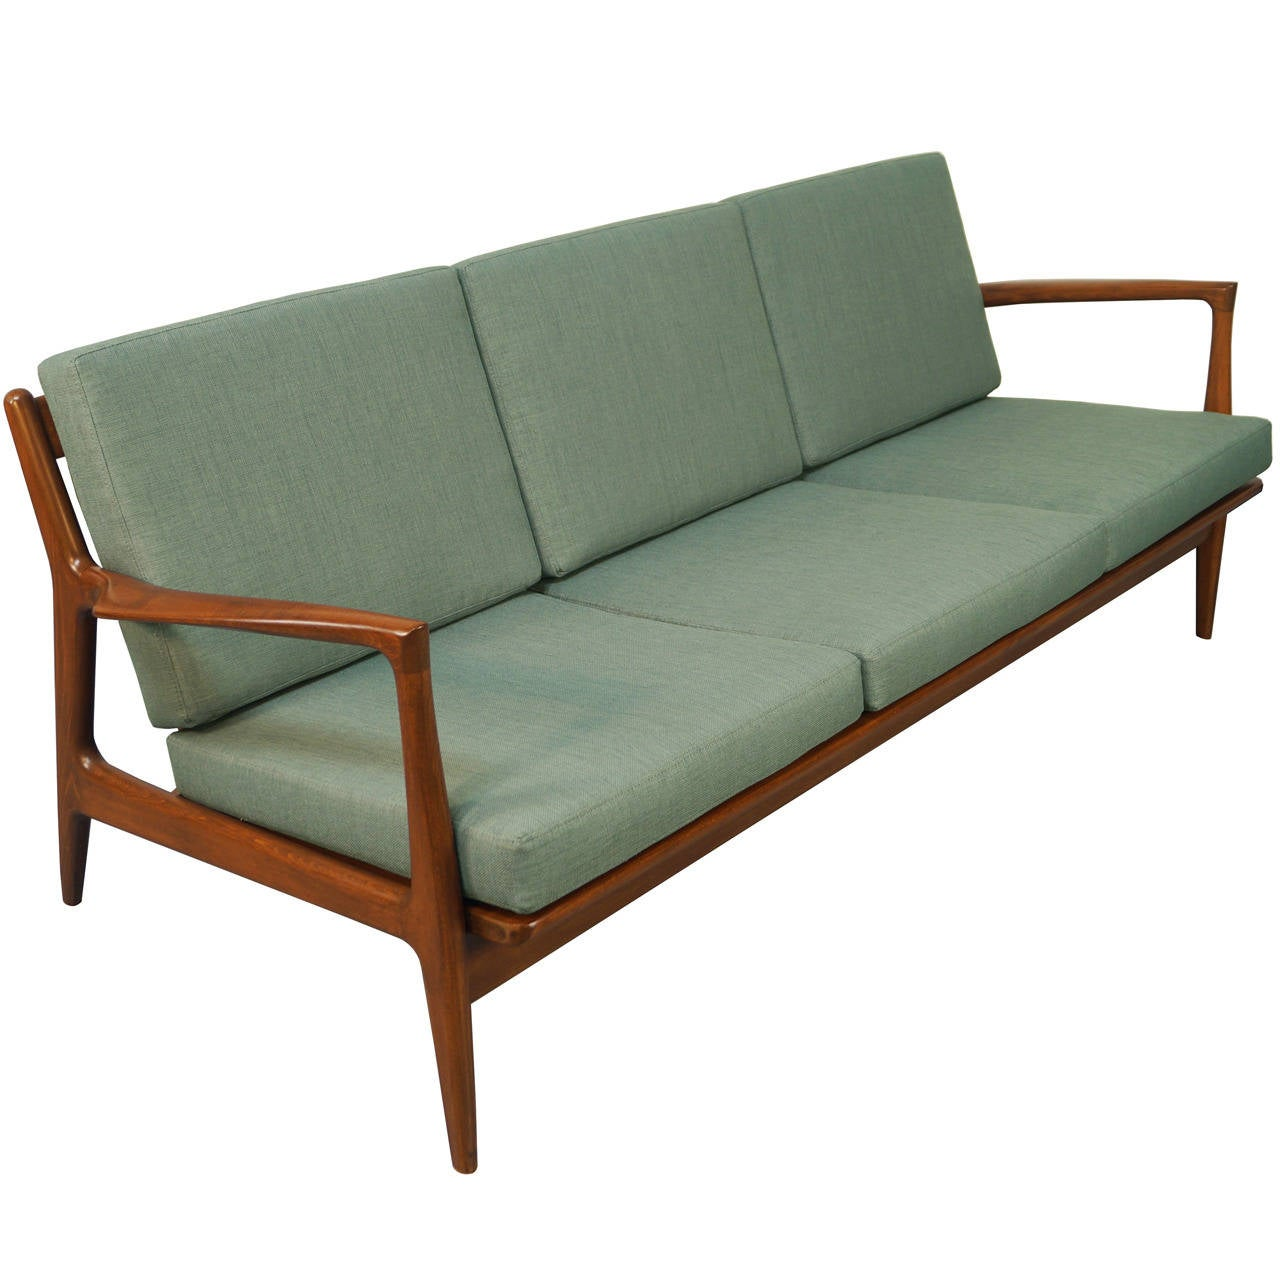 Danish modern sofas catchy mid century modern sleeper sofa for Danish modern reproduction